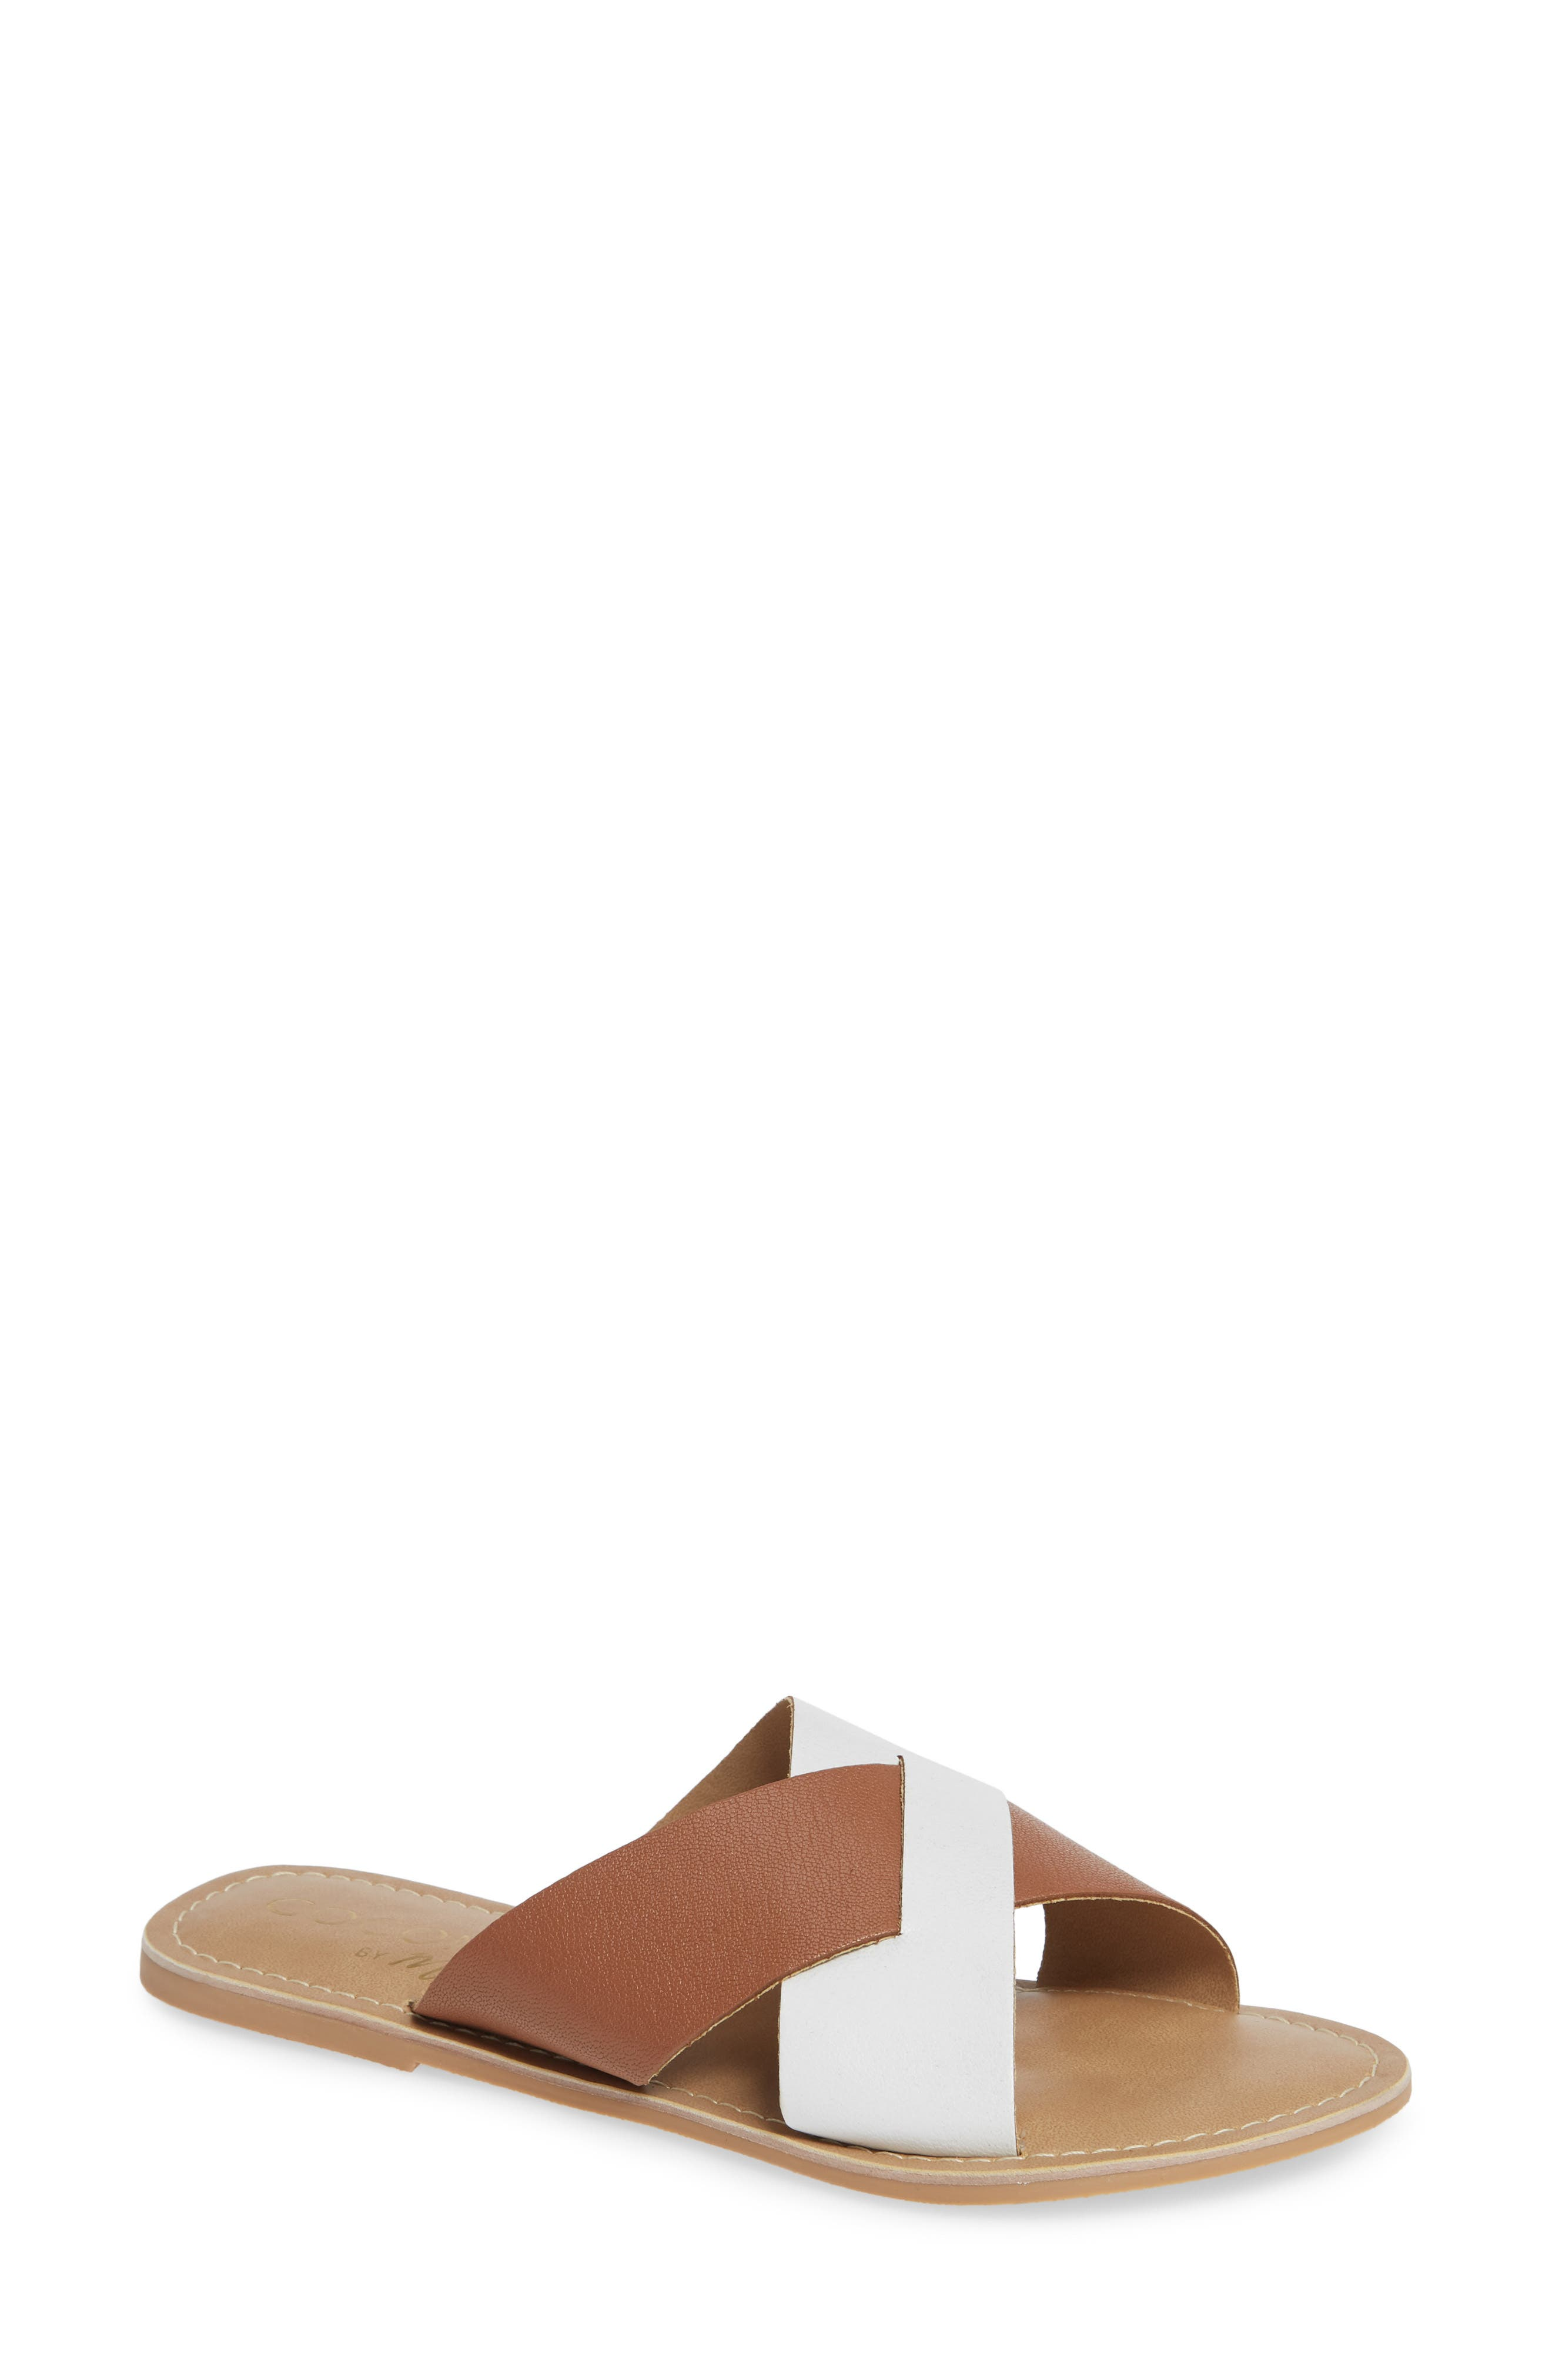 COCONUTS BY MATISSE, Wilma Slide Sandal, Main thumbnail 1, color, TAN/ WHITE LEATHER